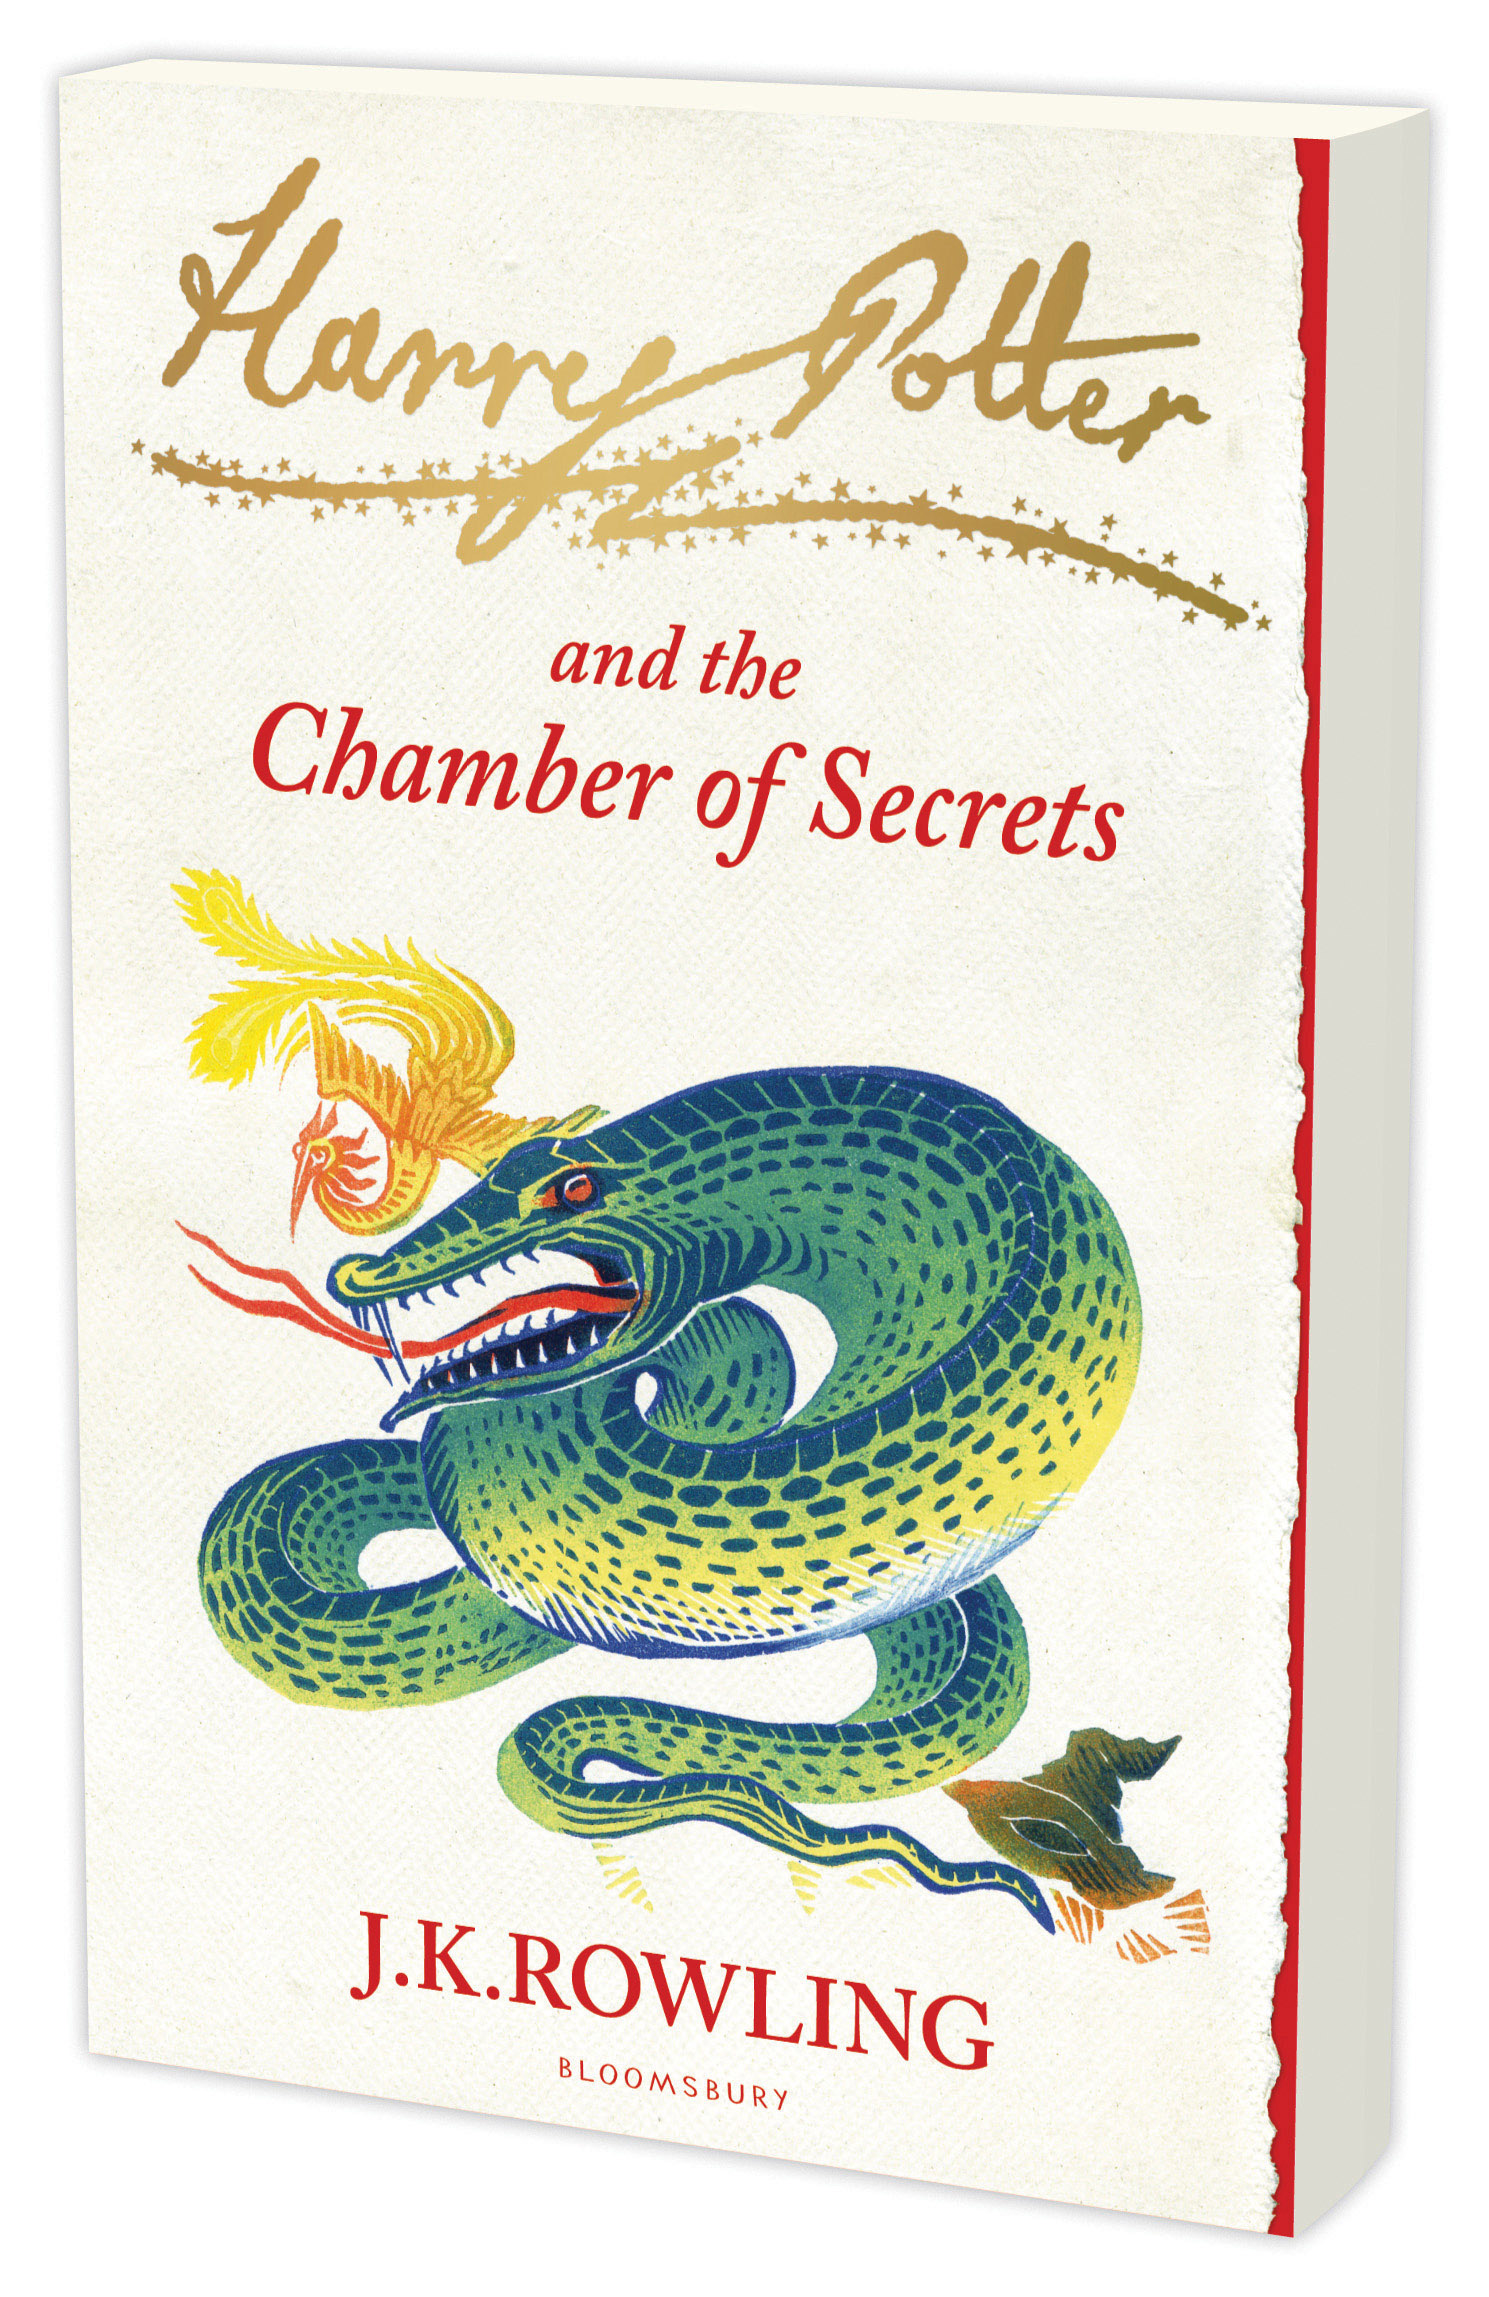 Harry Potter and the Chamber of Secrets signature edition